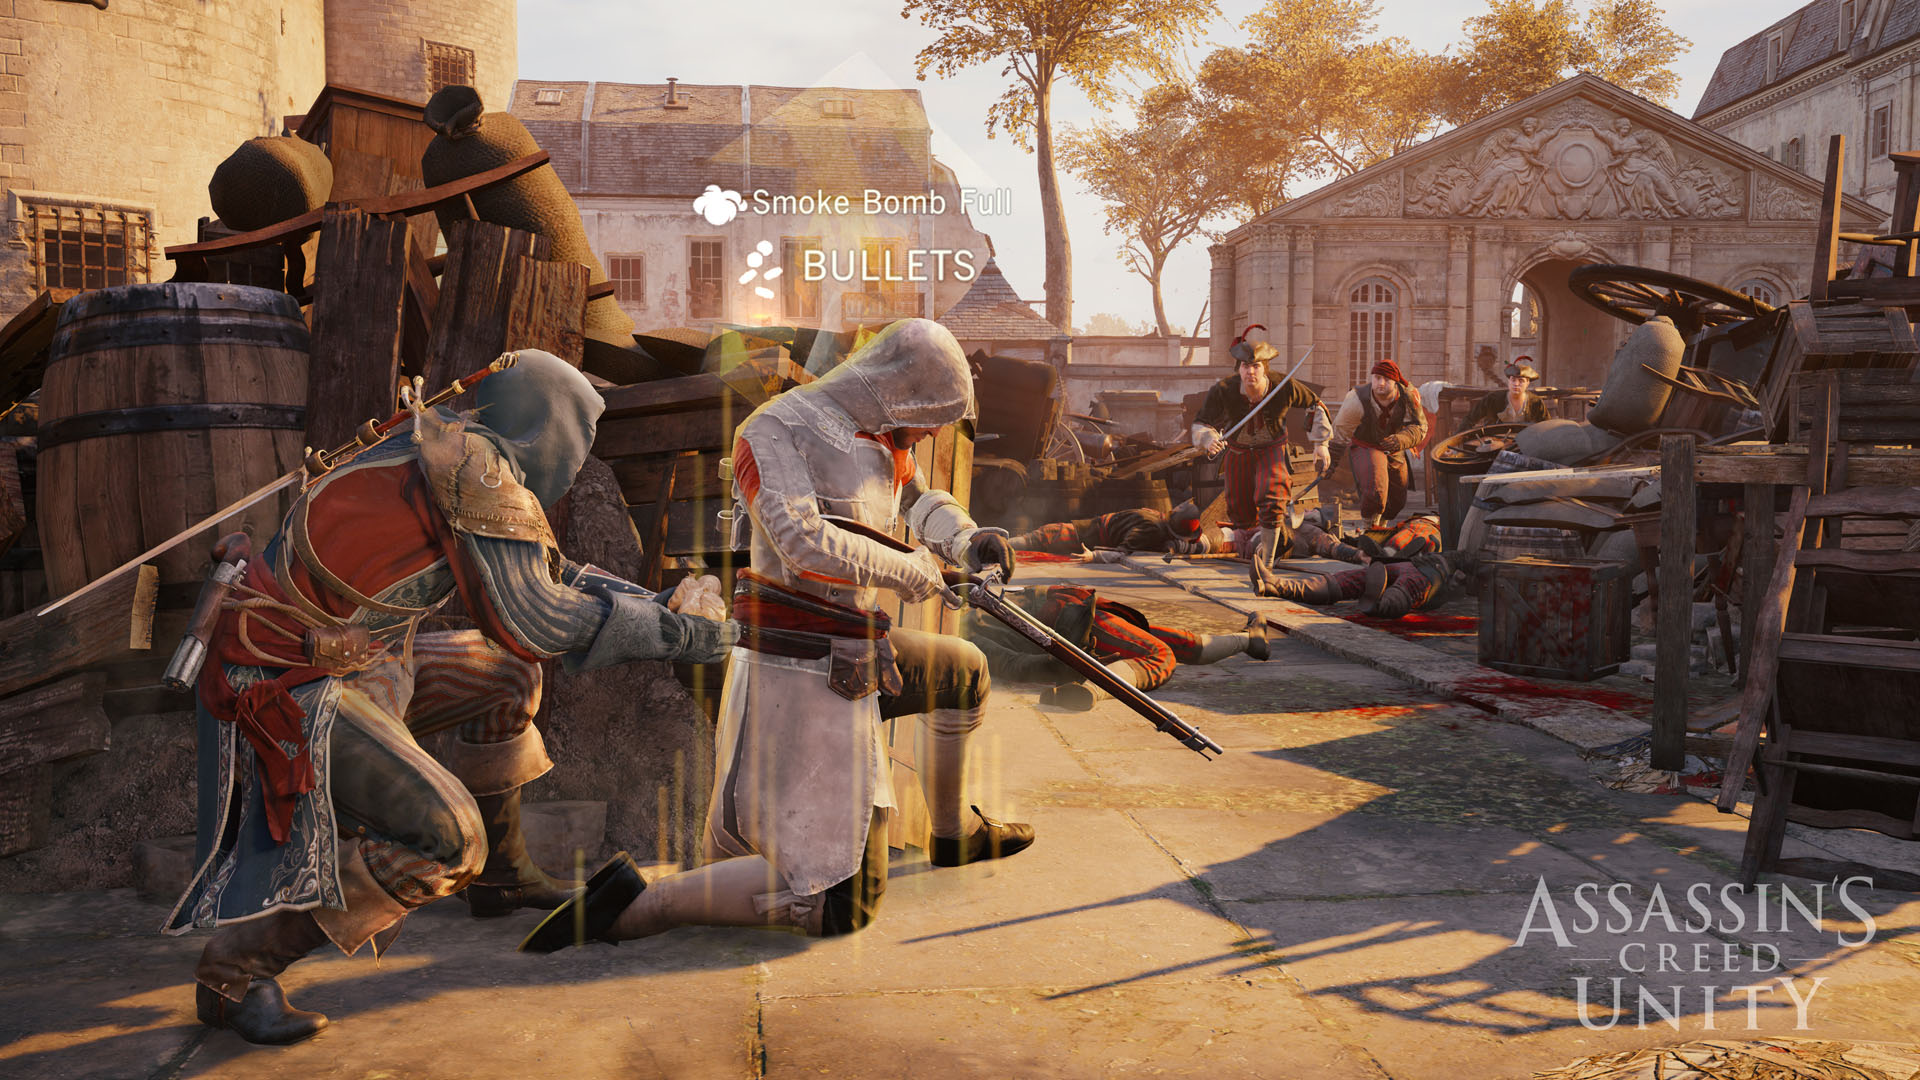 Assassins_Creed_Unity_COOP_RefillPoint_1409669060